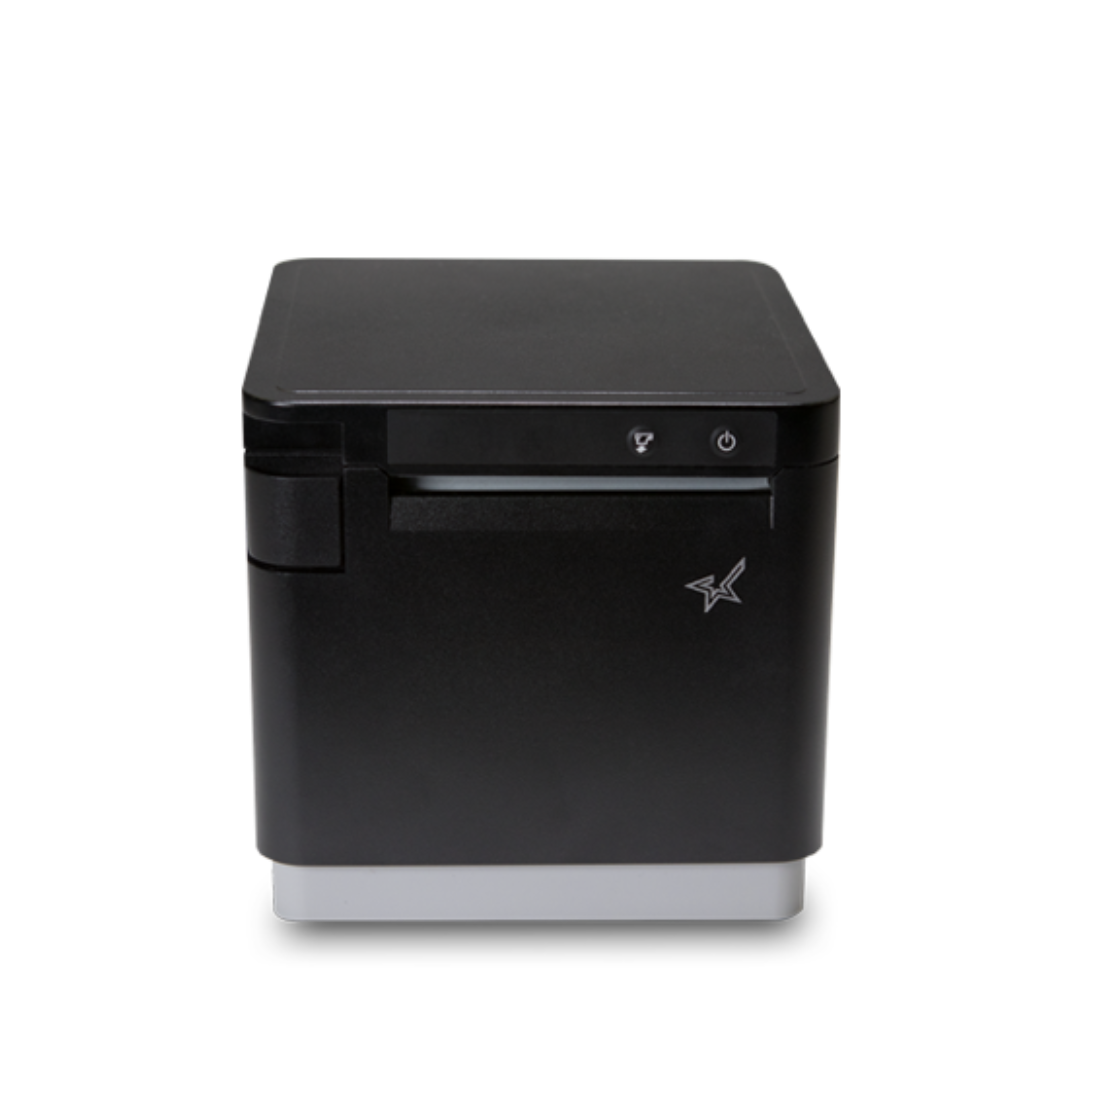 Star Micronics: What the restaurants purchase to use alongside UBMe's automatic order printing technology